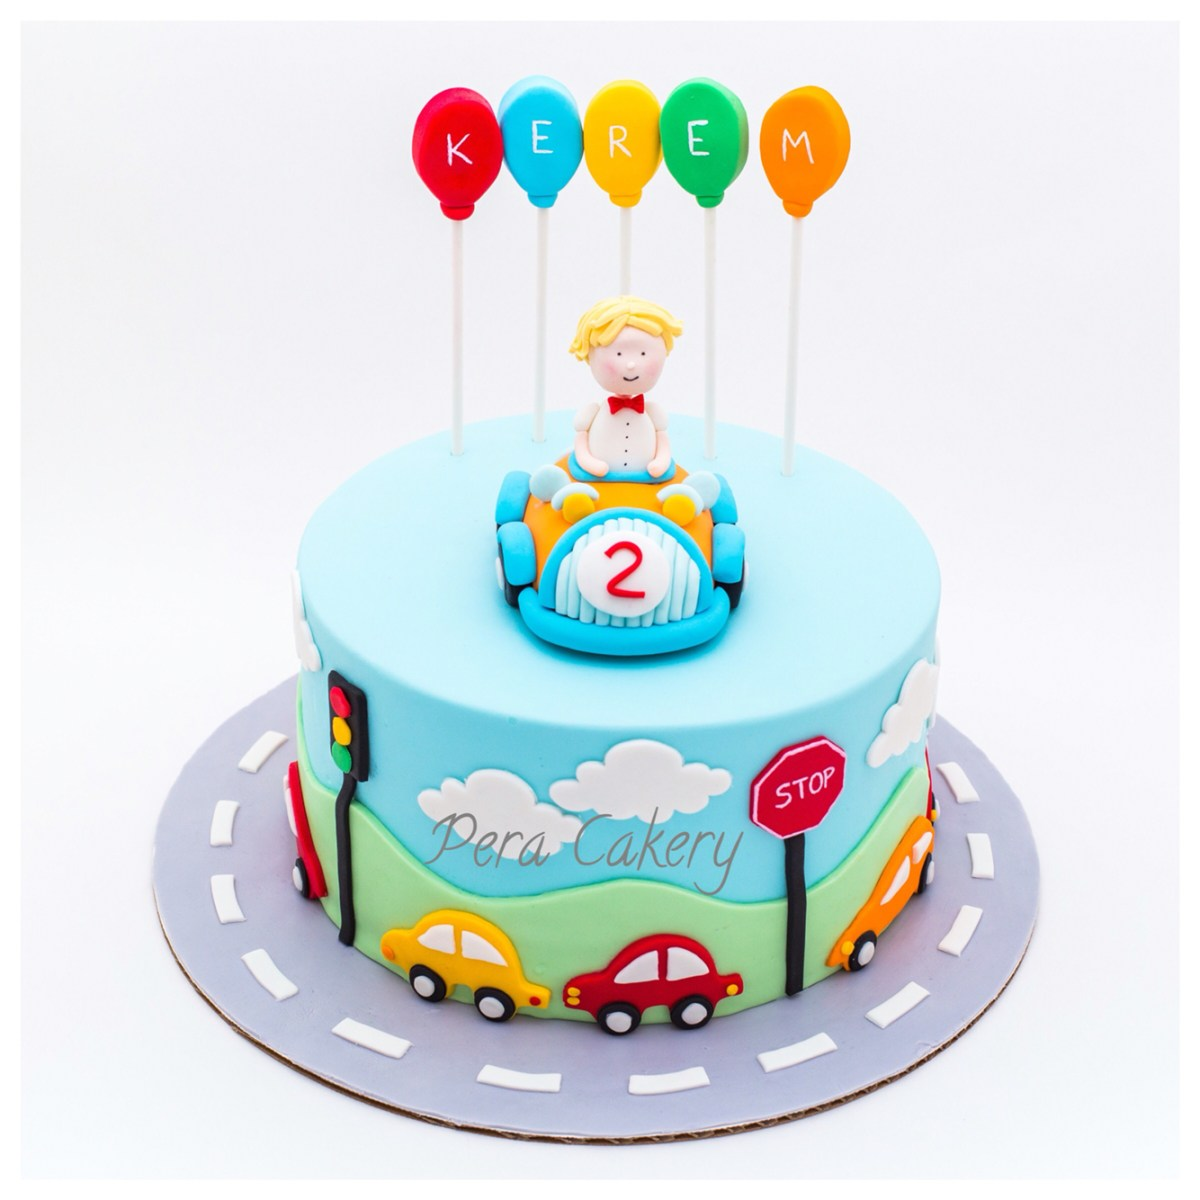 Amazing Birthday Cakes For Boys 9 Disney Birthday Cakes For 2 Year Olds Funny Birthday Cards Online Alyptdamsfinfo